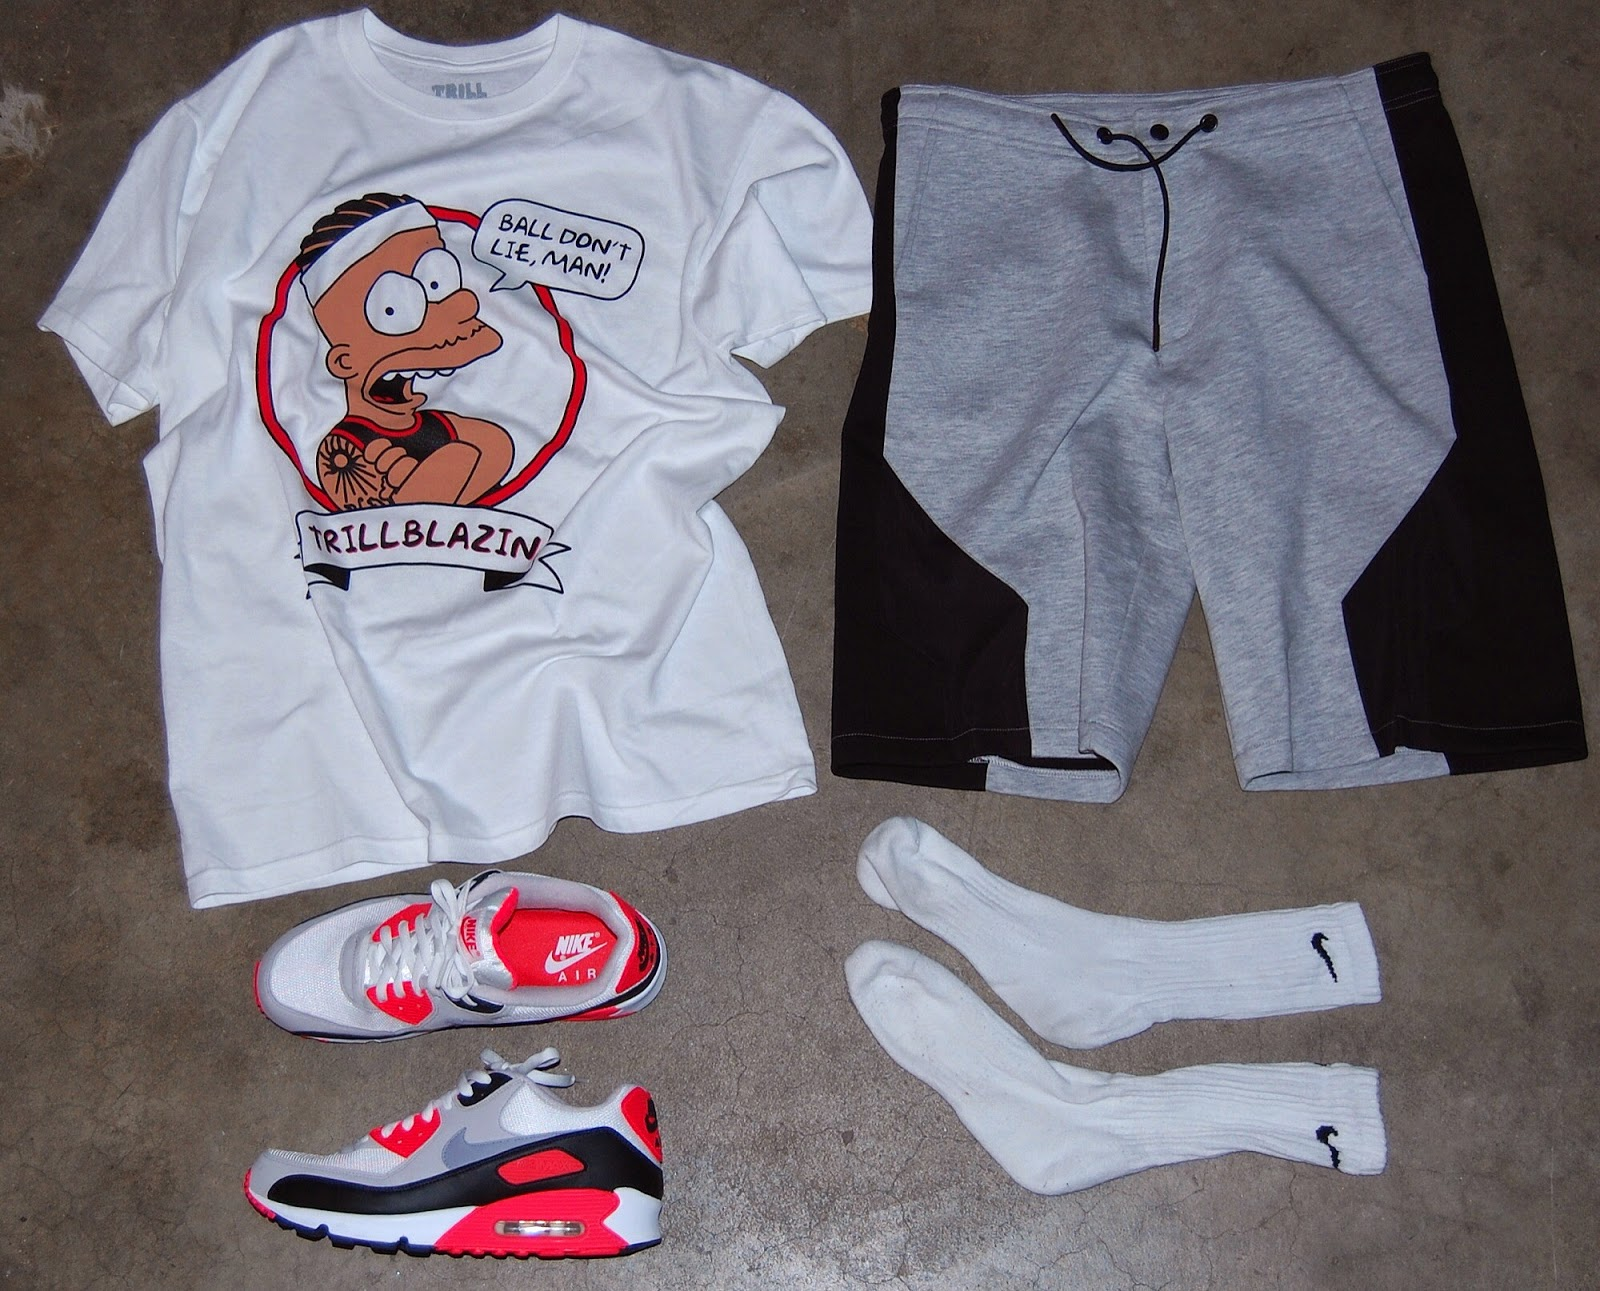 best sneakers 3a0da 2ca38 TRILLBLAZIN (tattoo guy) shirt, ASOS sweat shorts, Nike Air Max 90